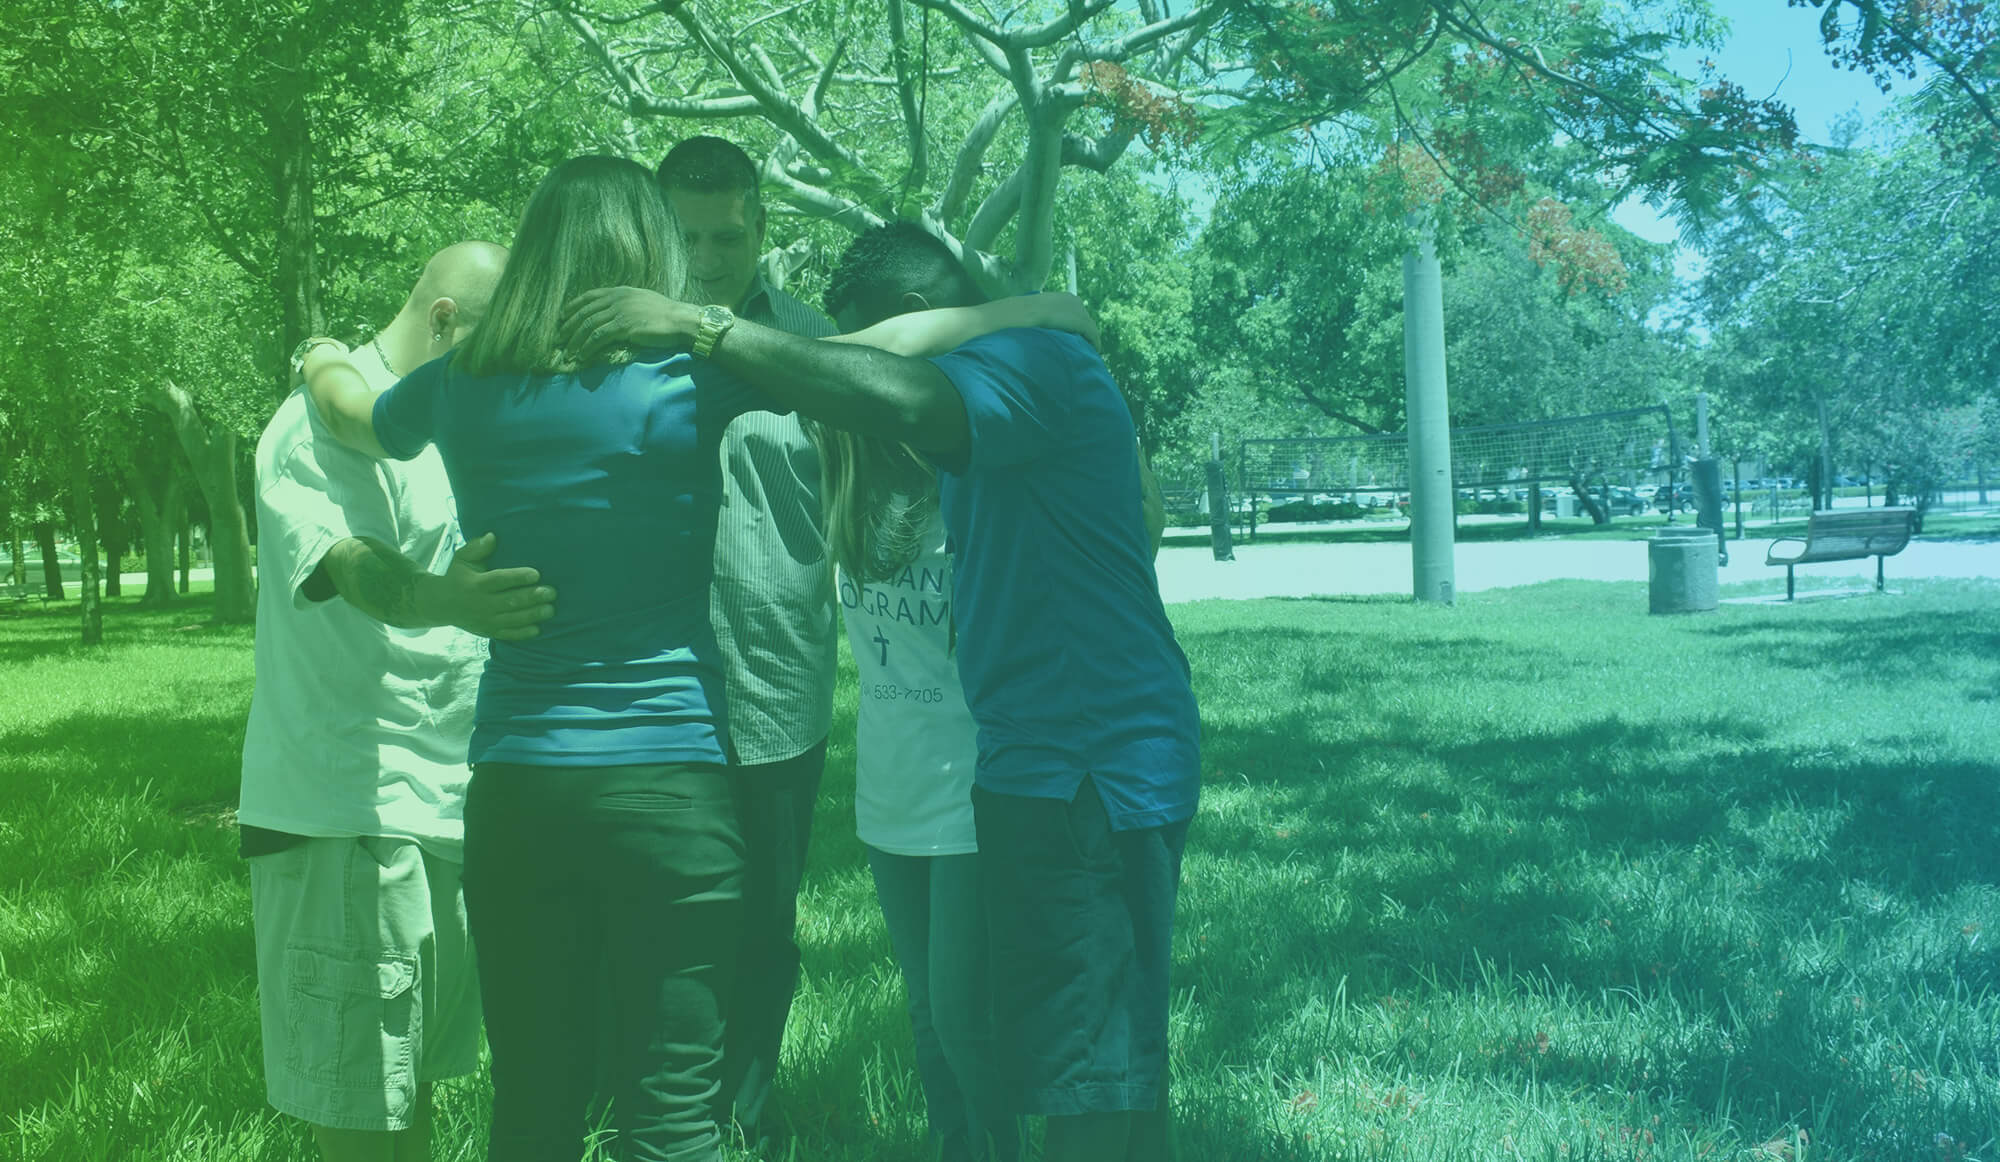 five people praying together at a park